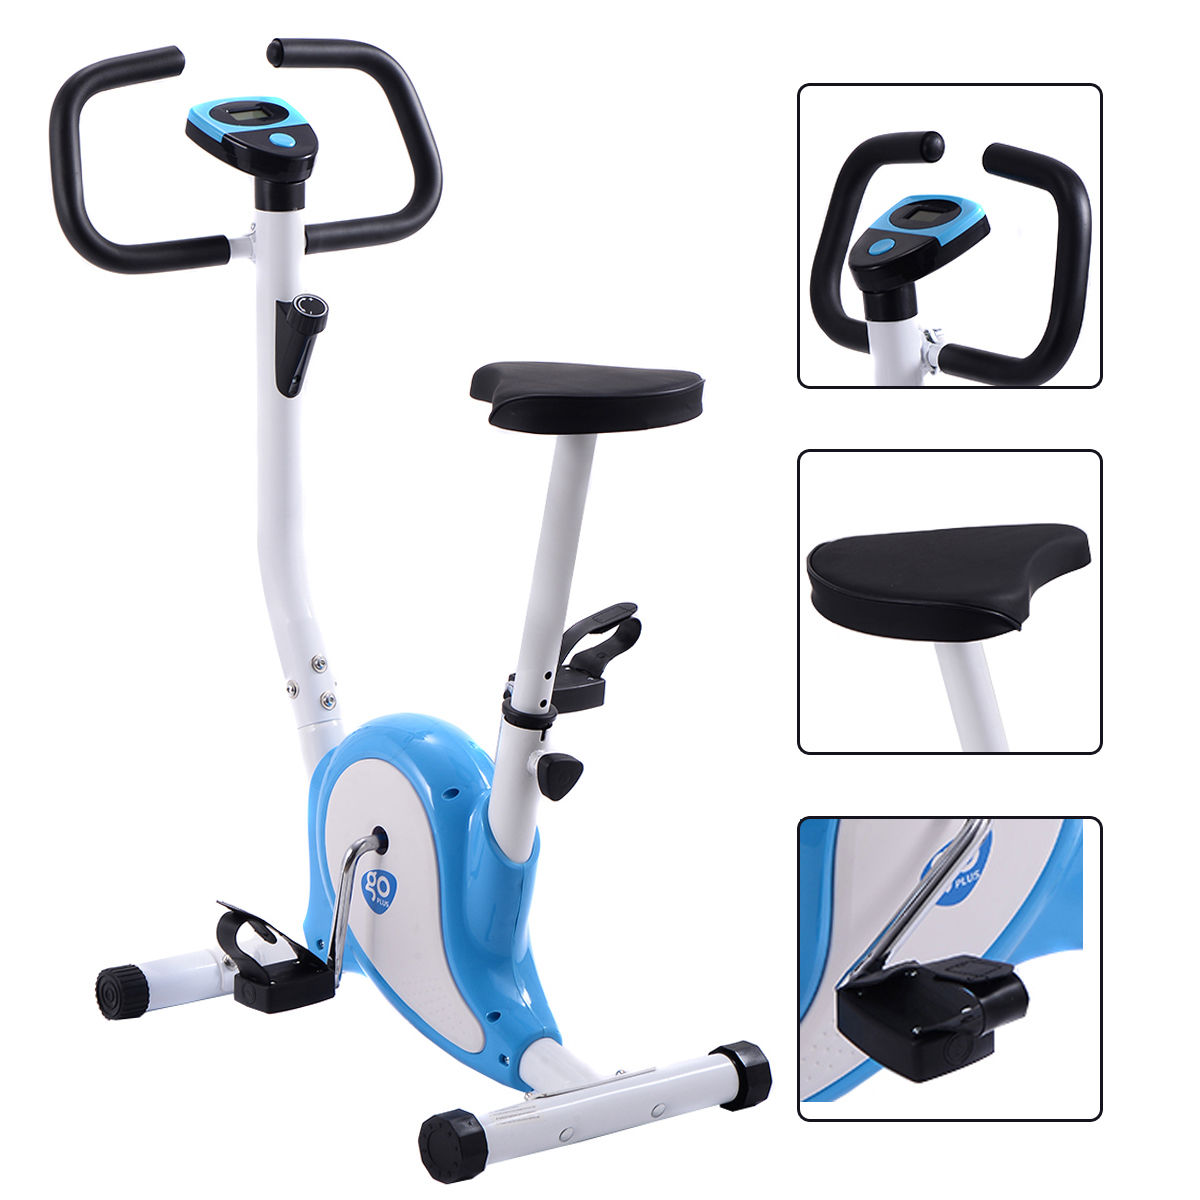 Goplus Exercise Bike Stationary Cycling Fitness Cardio Aerobic Equipment Gym Blue by Costway